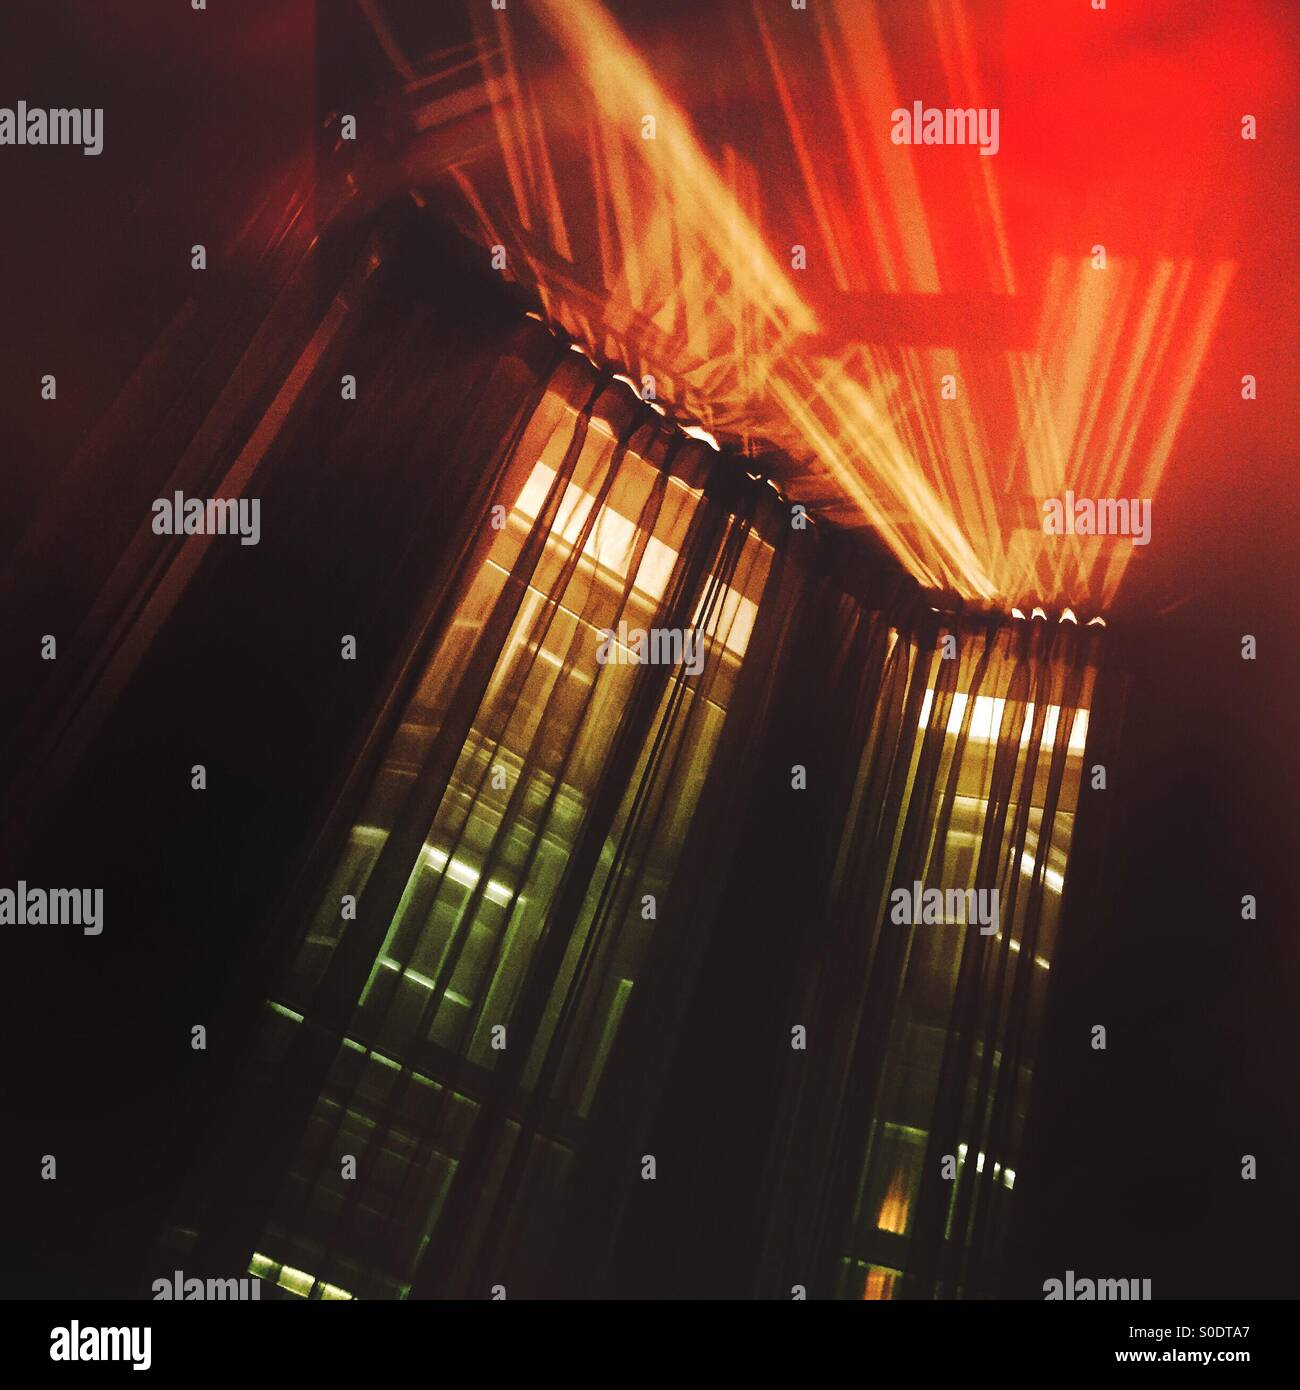 An abstract image of two tall windows with multicolor lights streaming through. - Stock Image